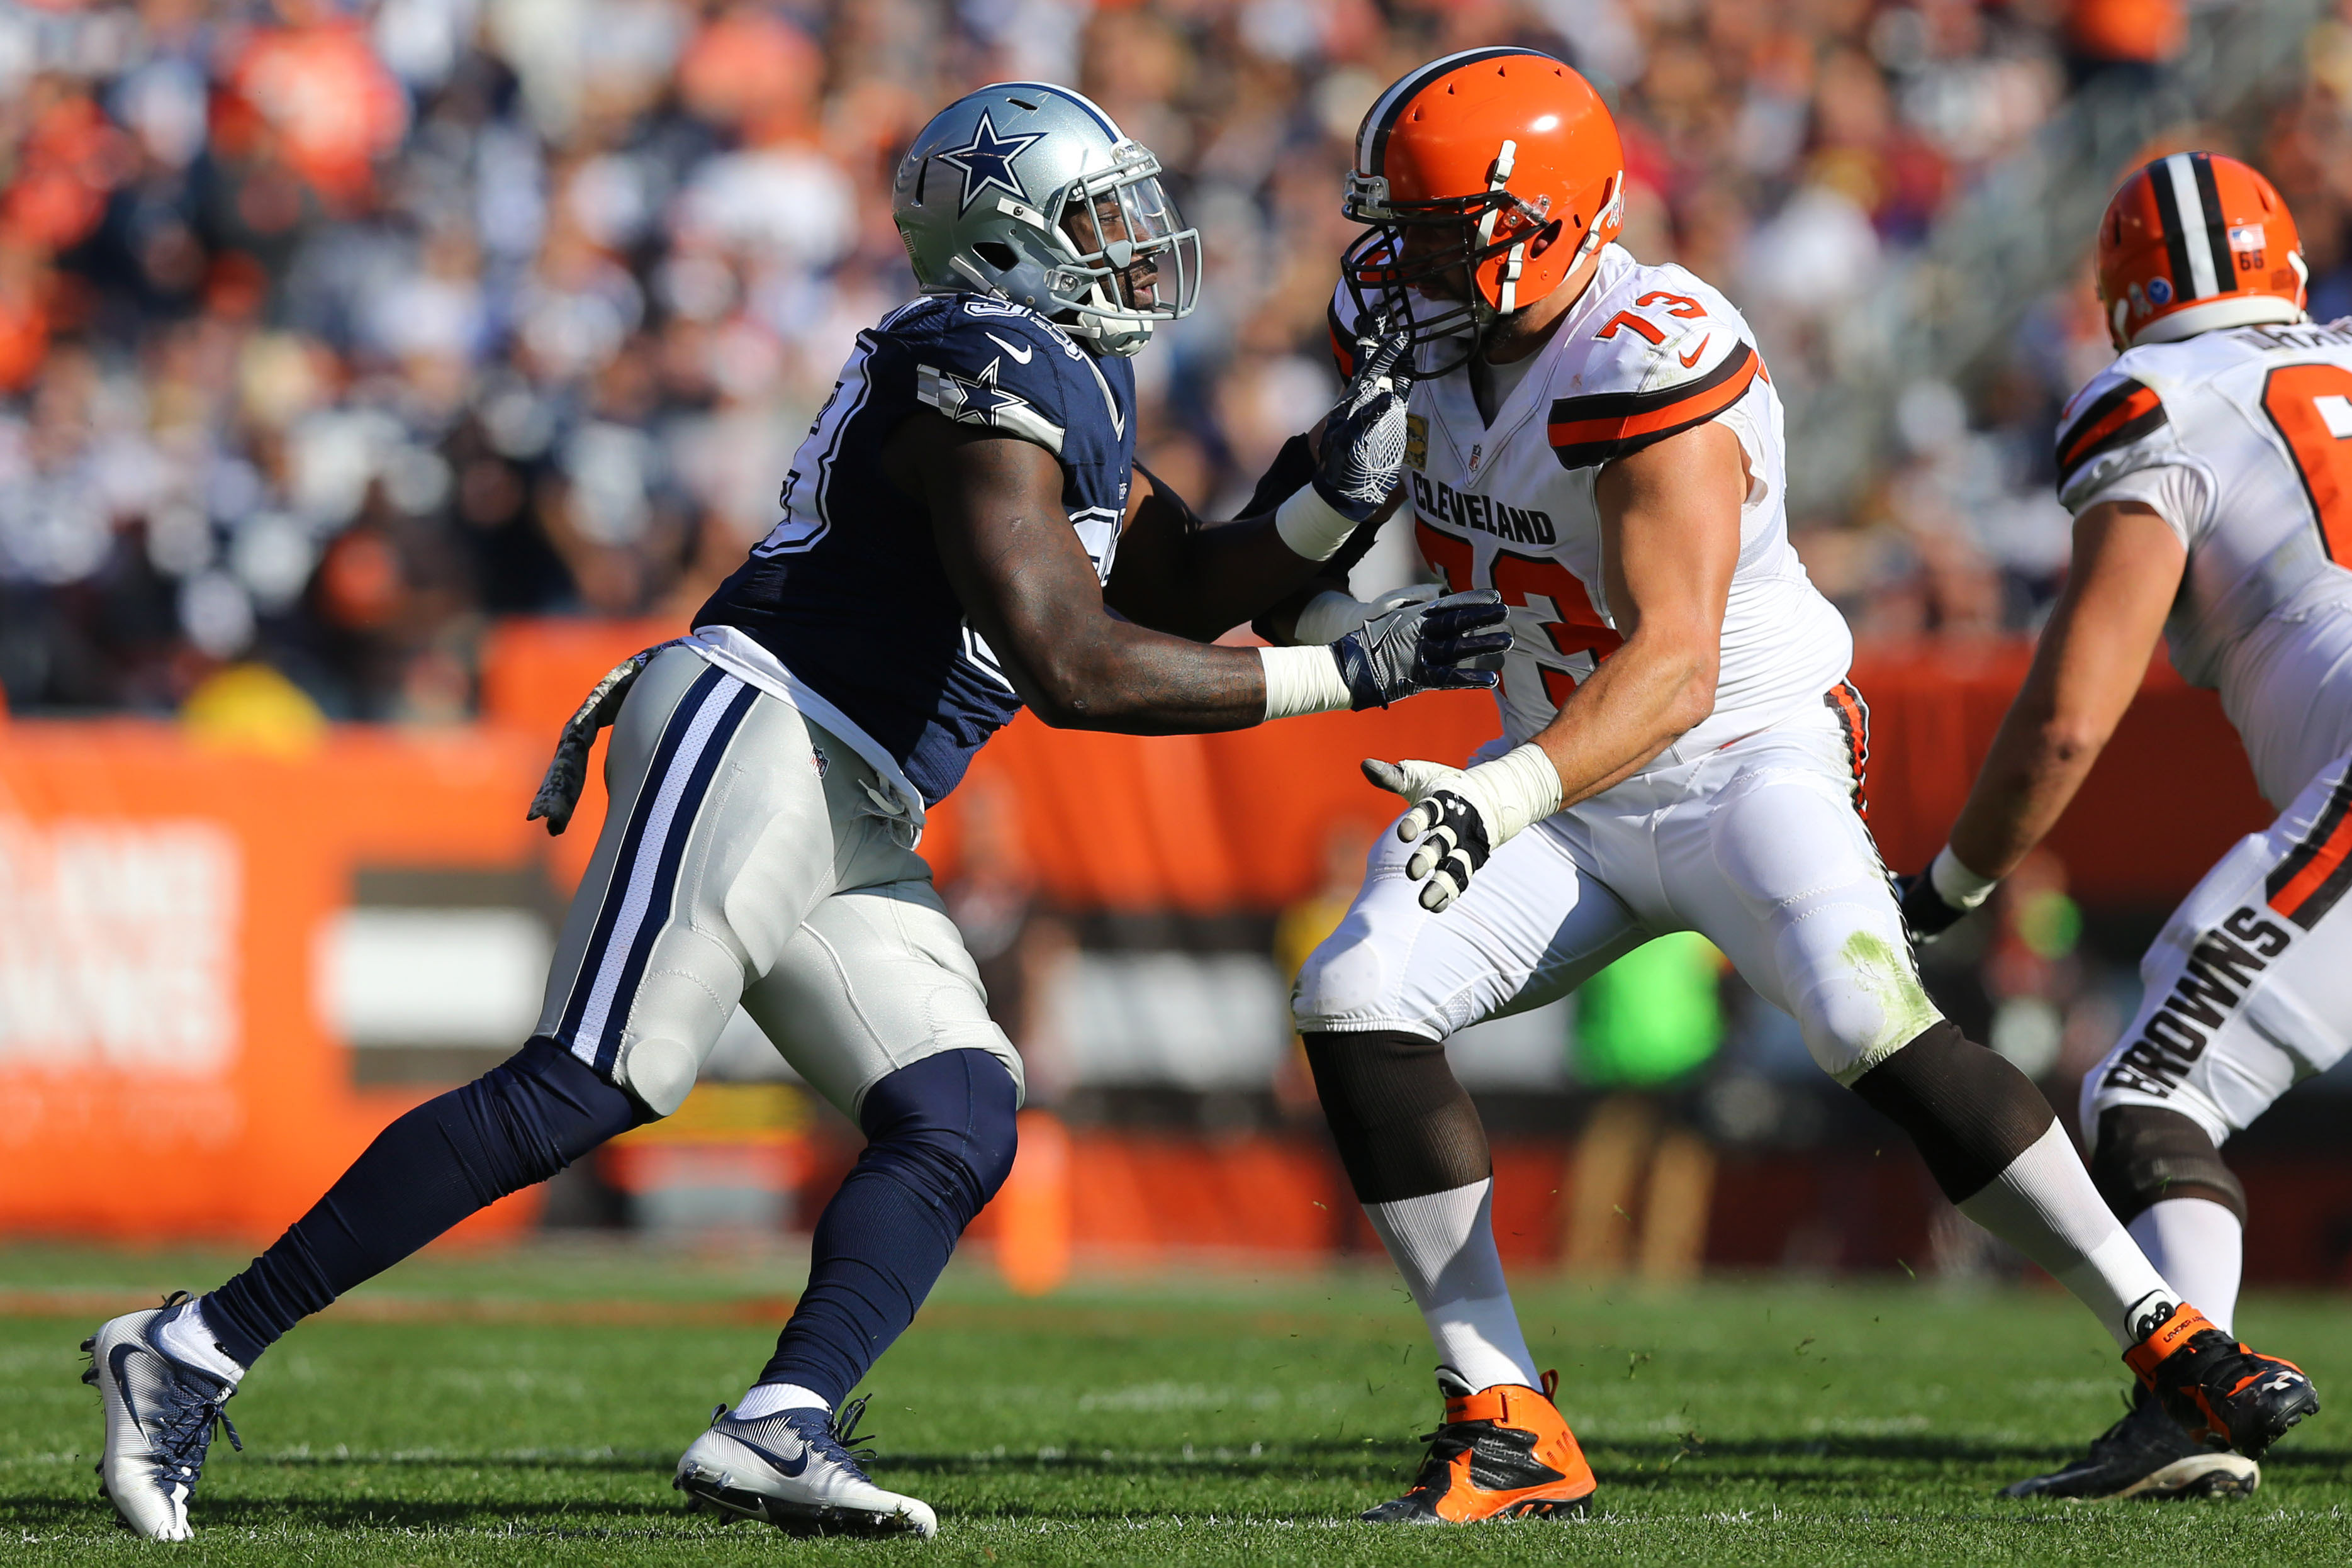 9666772-nfl-dallas-cowboys-at-cleveland-browns